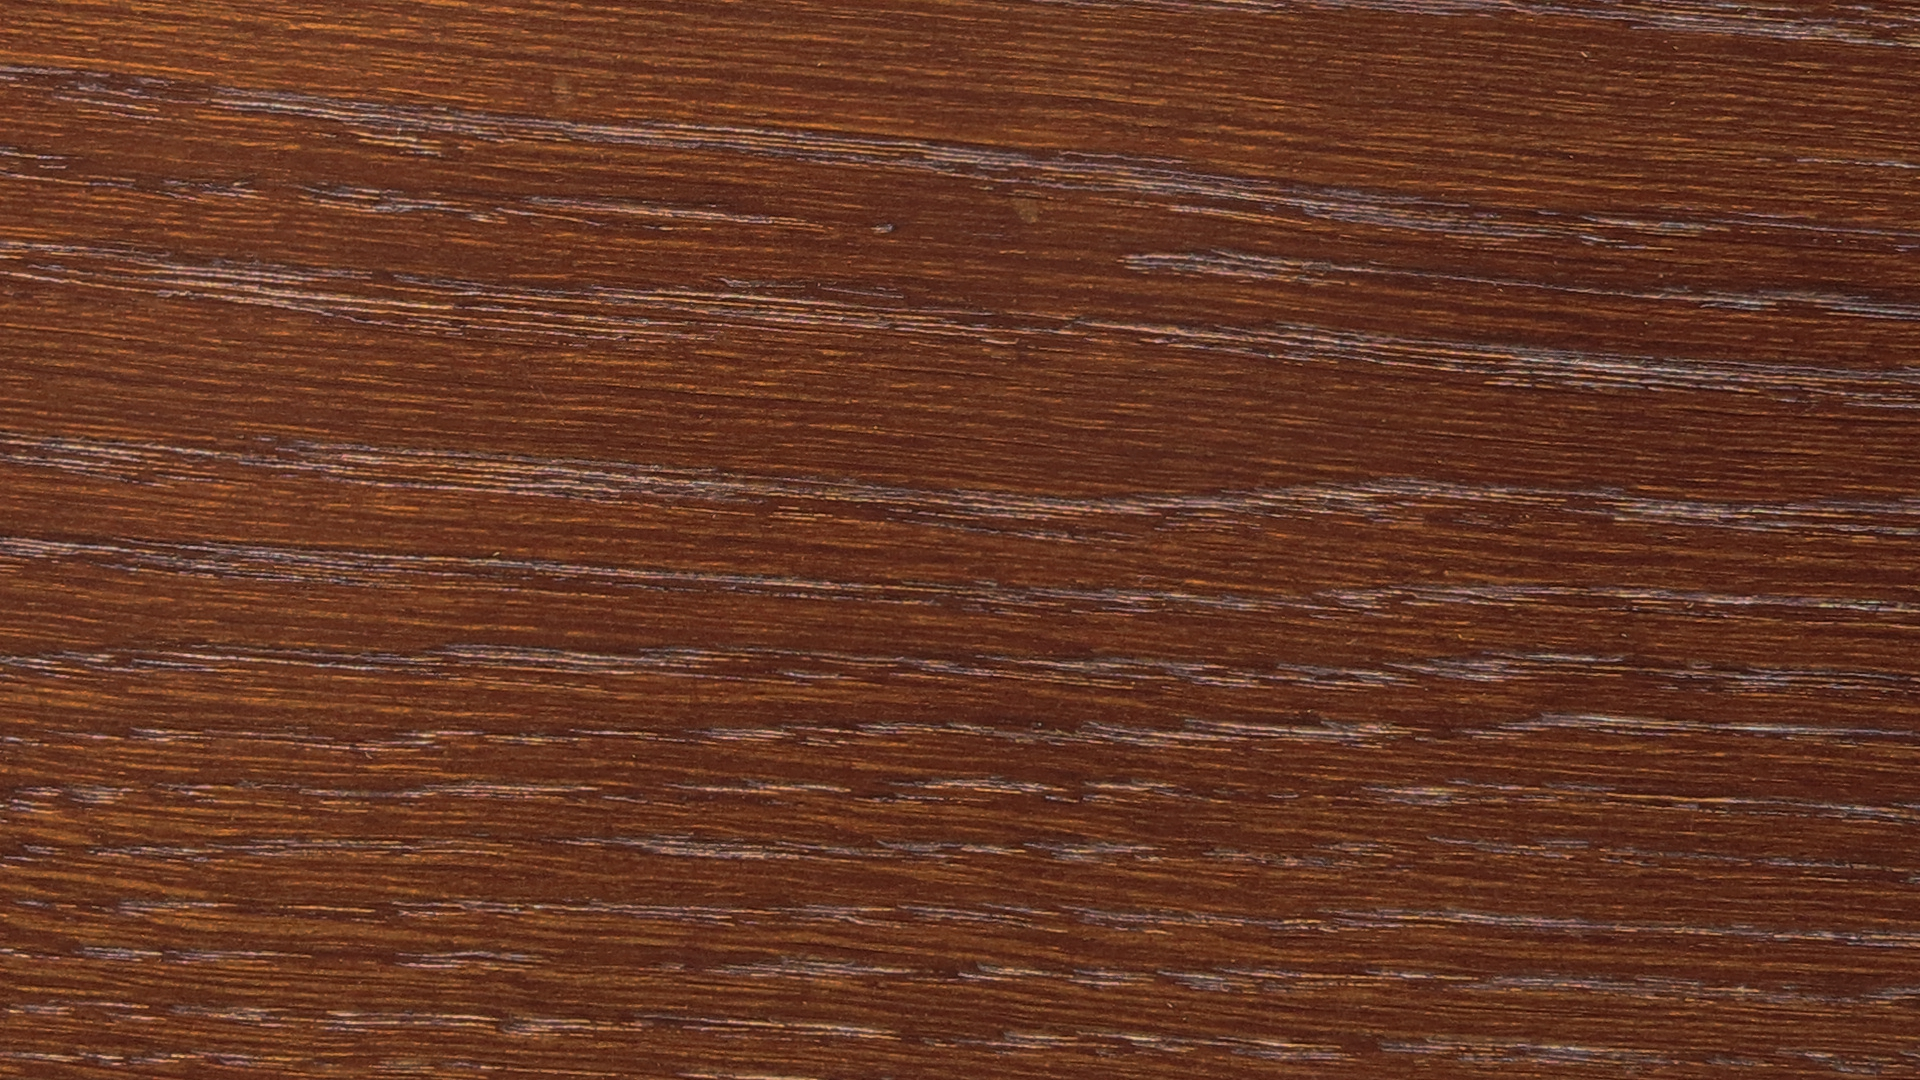 colorwood 16_57b7352b8f9fd